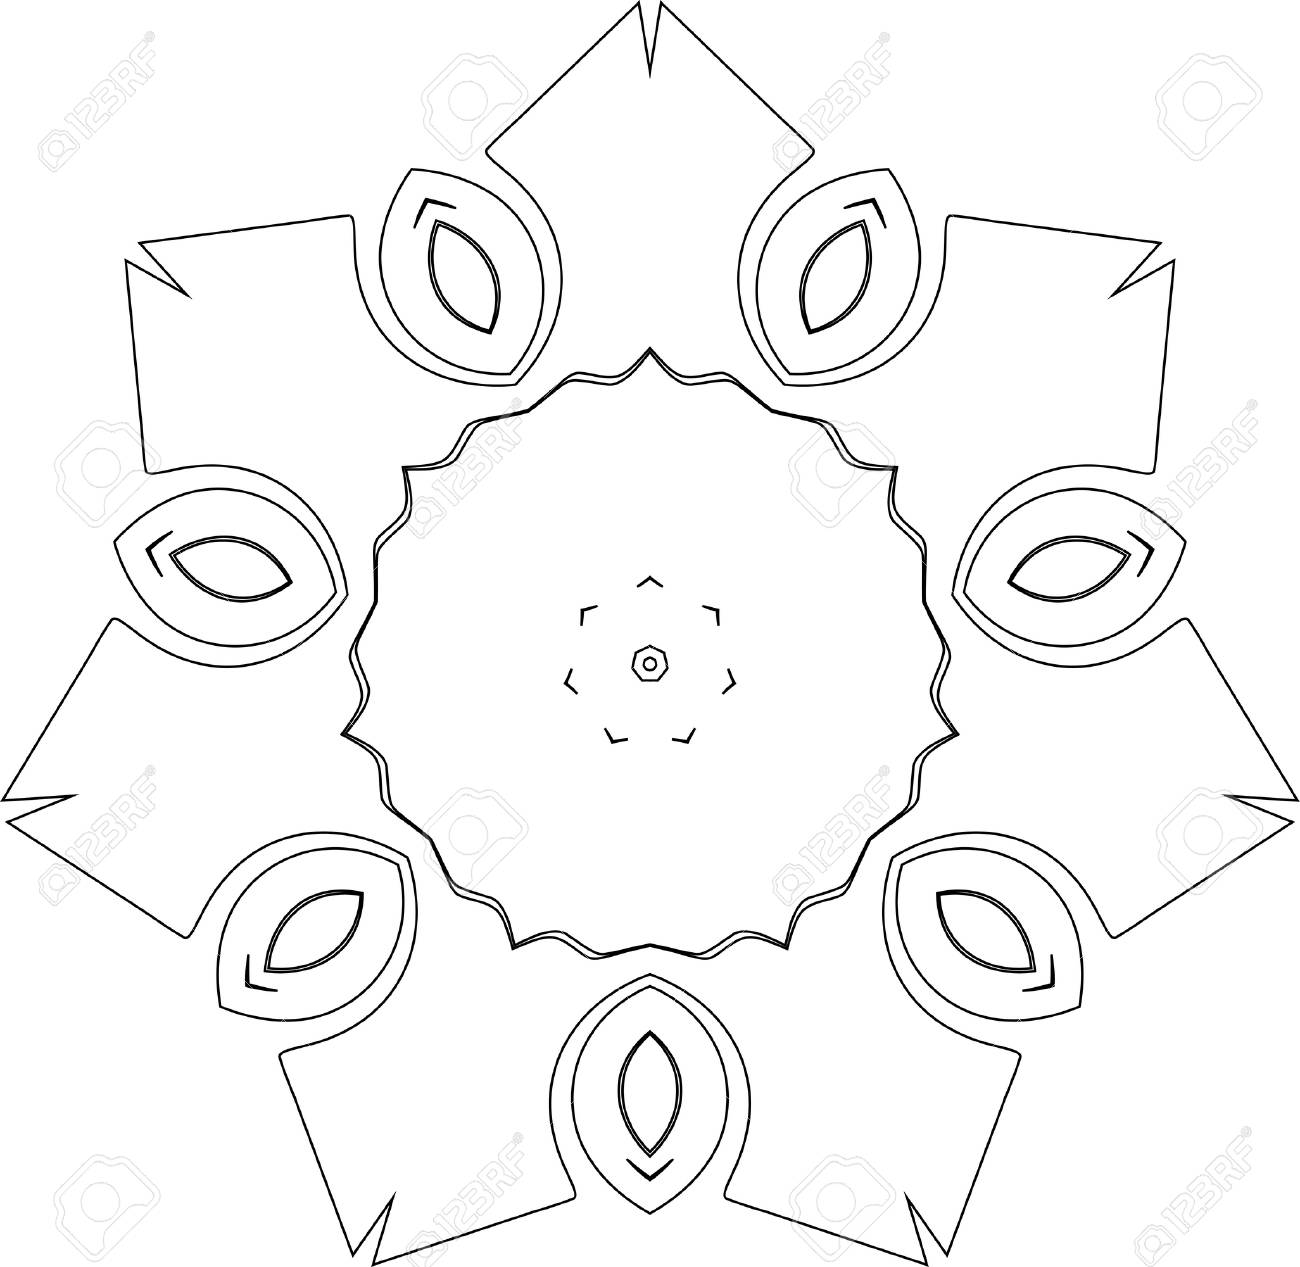 black and white simple symmetry pattern of curves with acute angles Stock Vector - 3737903